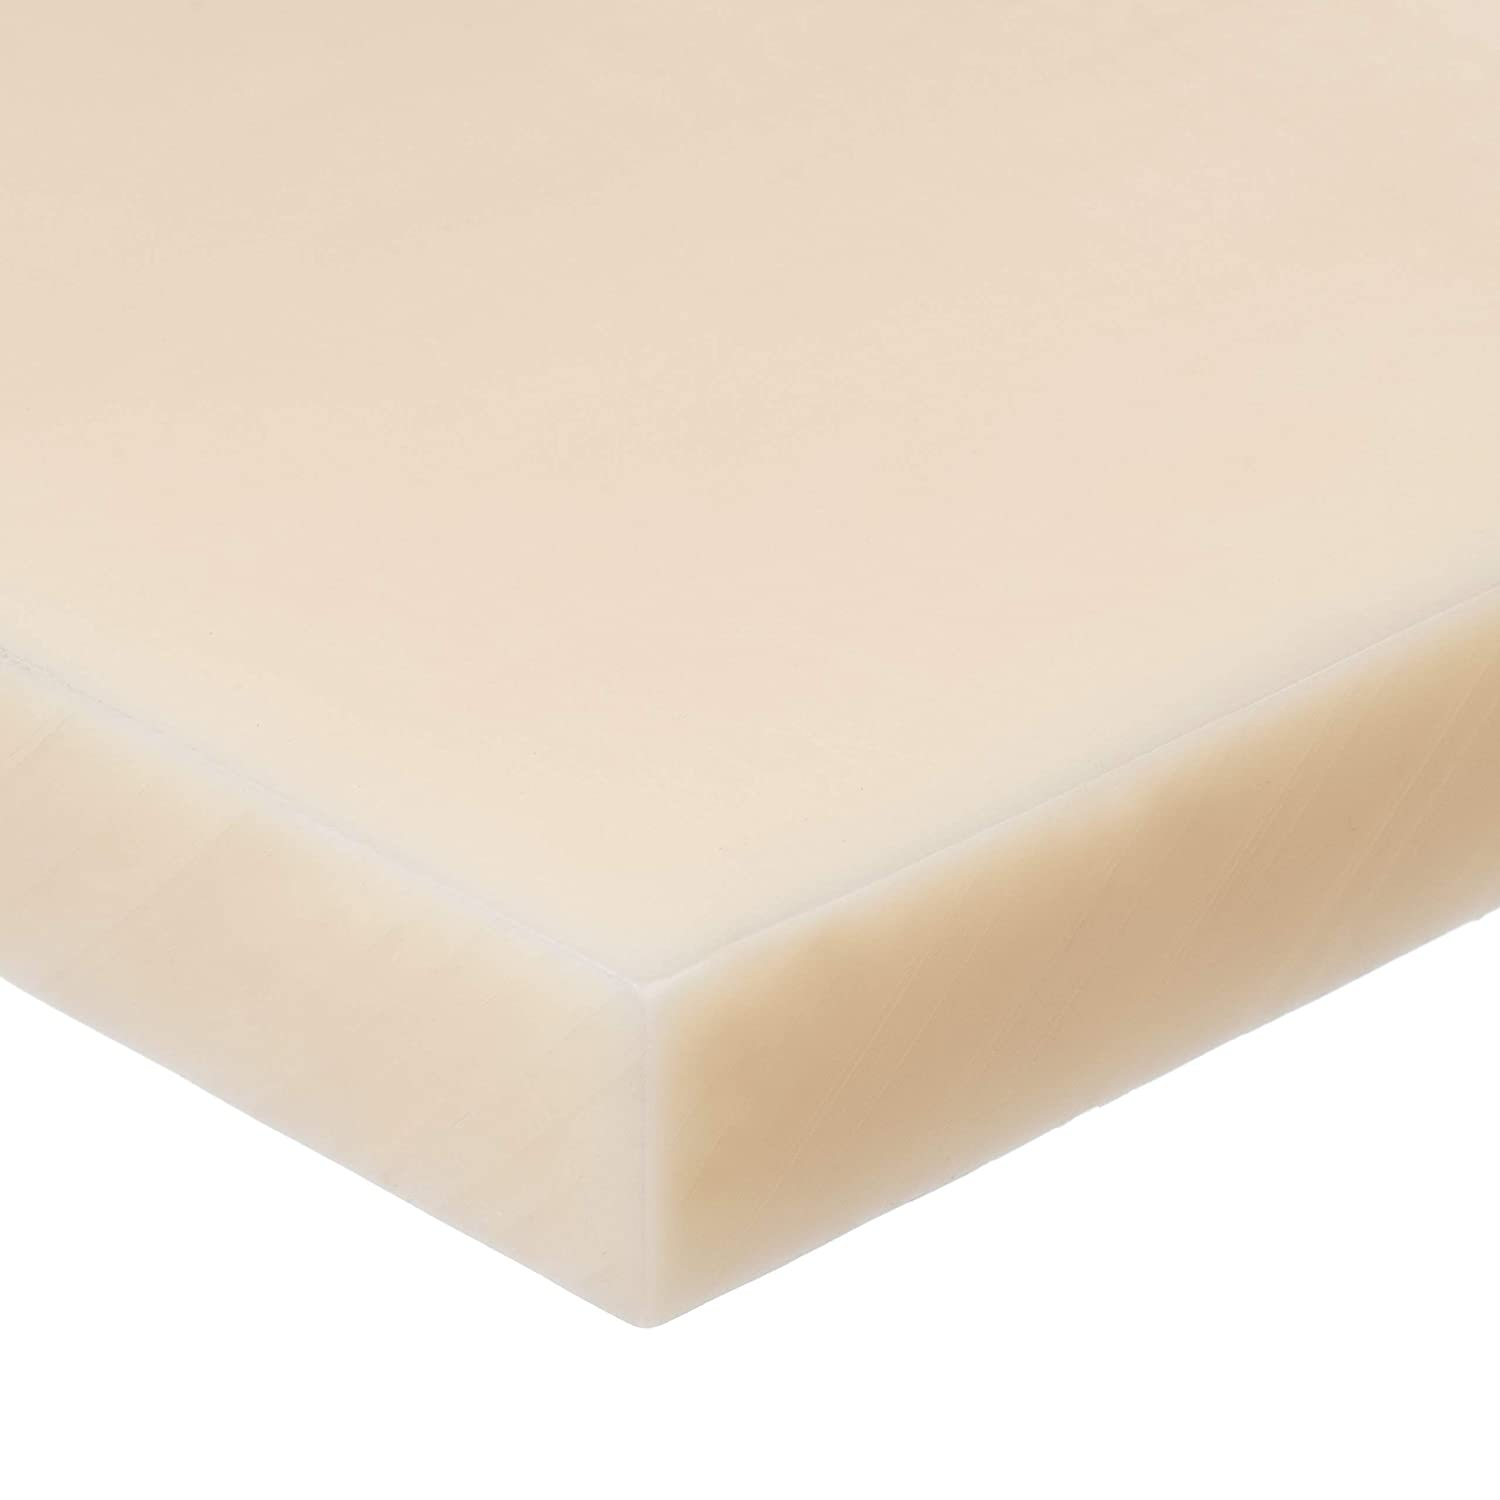 USA SEALING Antistatic Acetal PS-AC-ESD-38 store - Plastic ! Super beauty product restock quality top! BAR